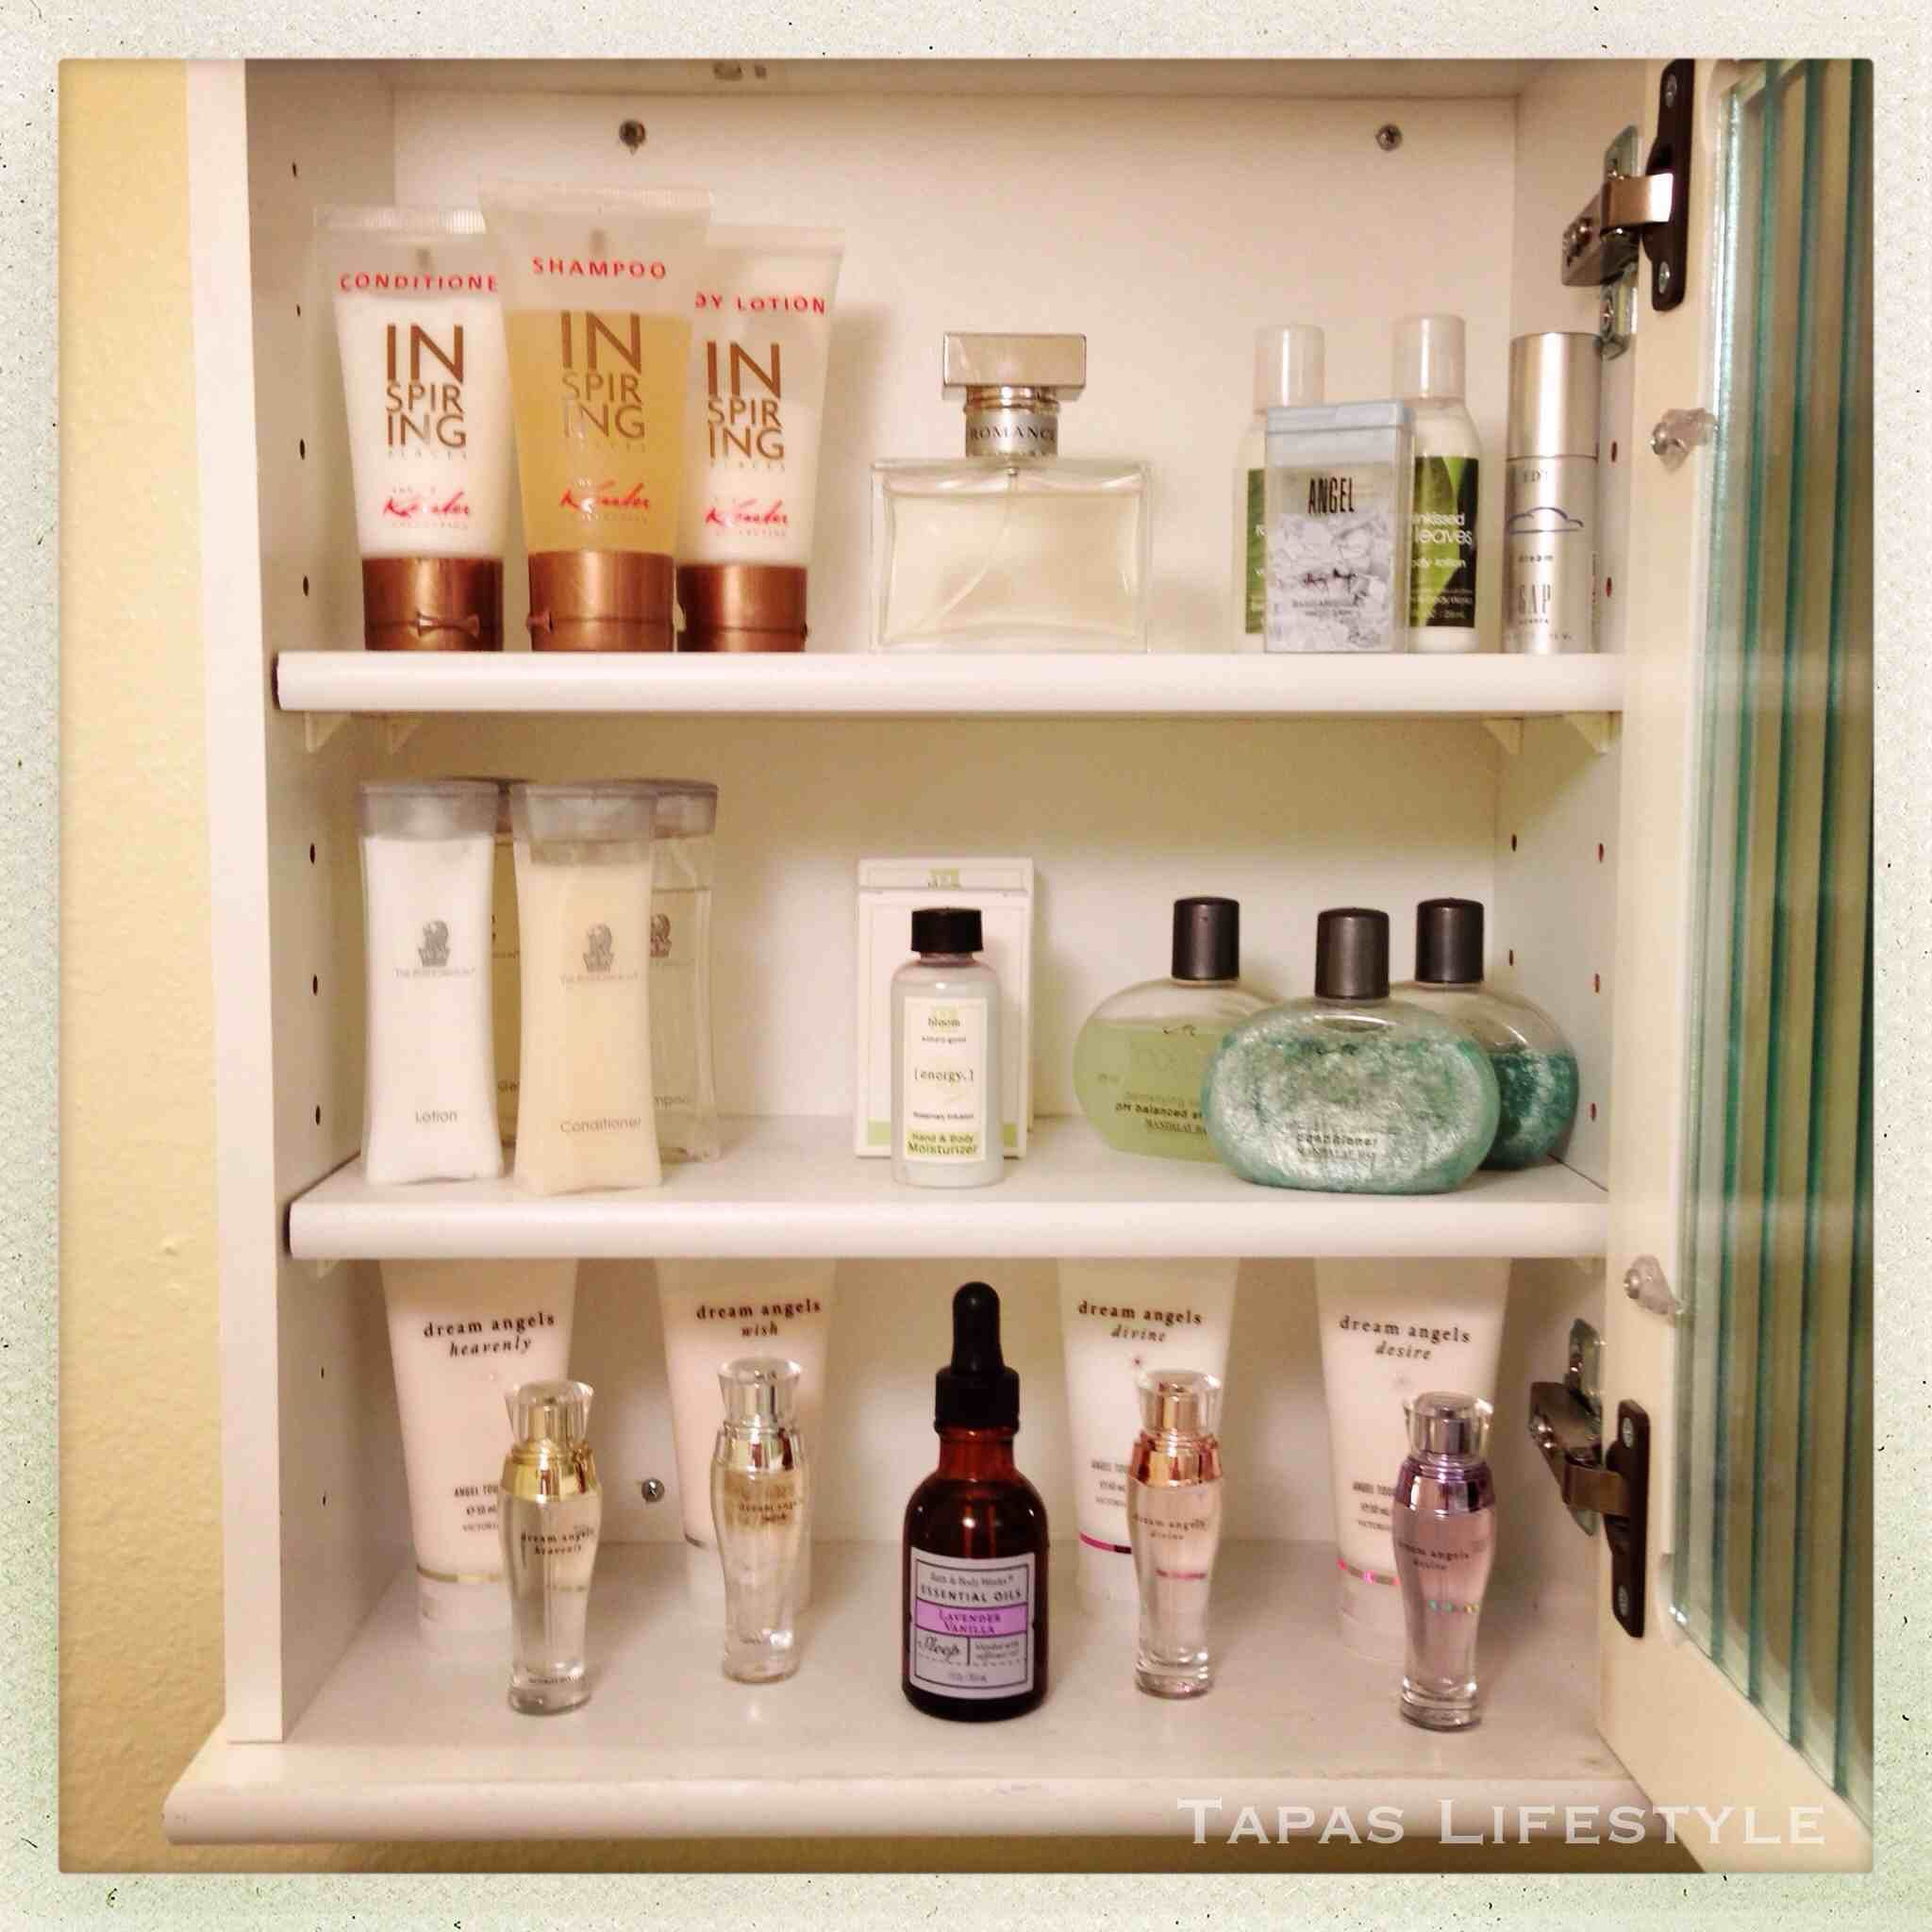 Bed Bath And Beyond Bathroom Cabinet Organizer   As It Pertains To Bathrooms  Space Is Limited. Why A Fine Cabinetry Set Is Re